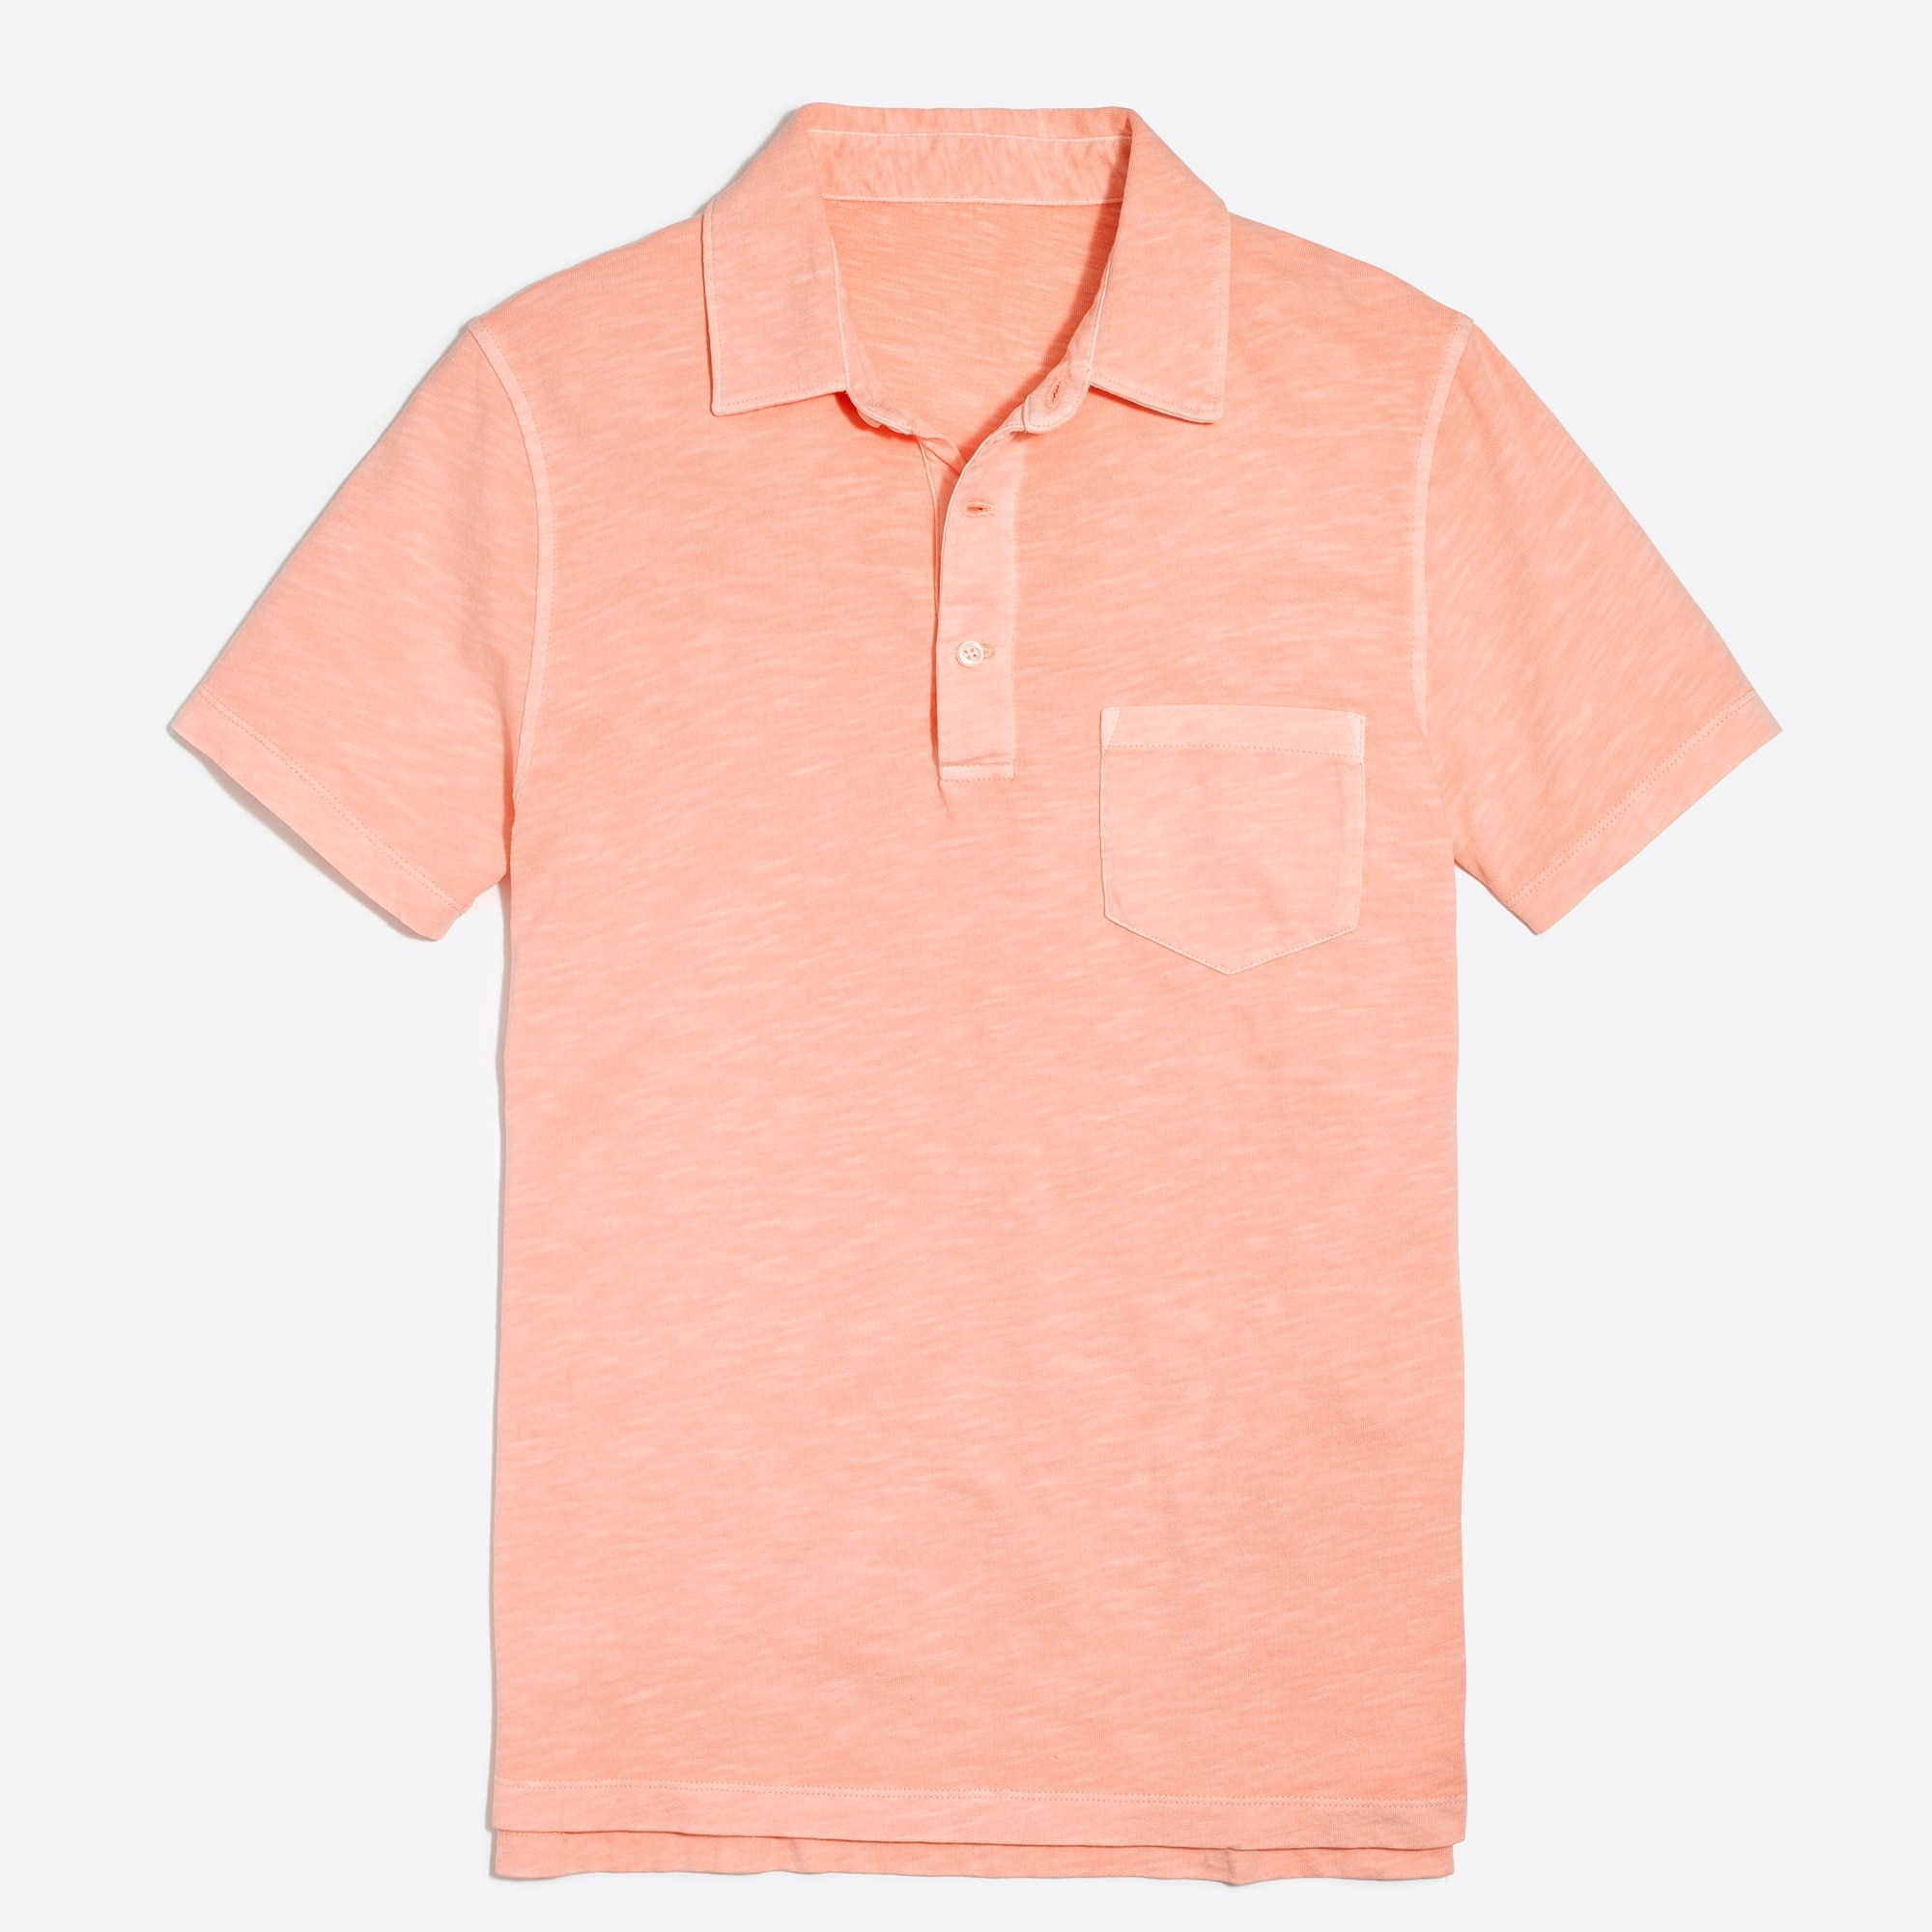 Image 2 for Sunwashed polo shirt